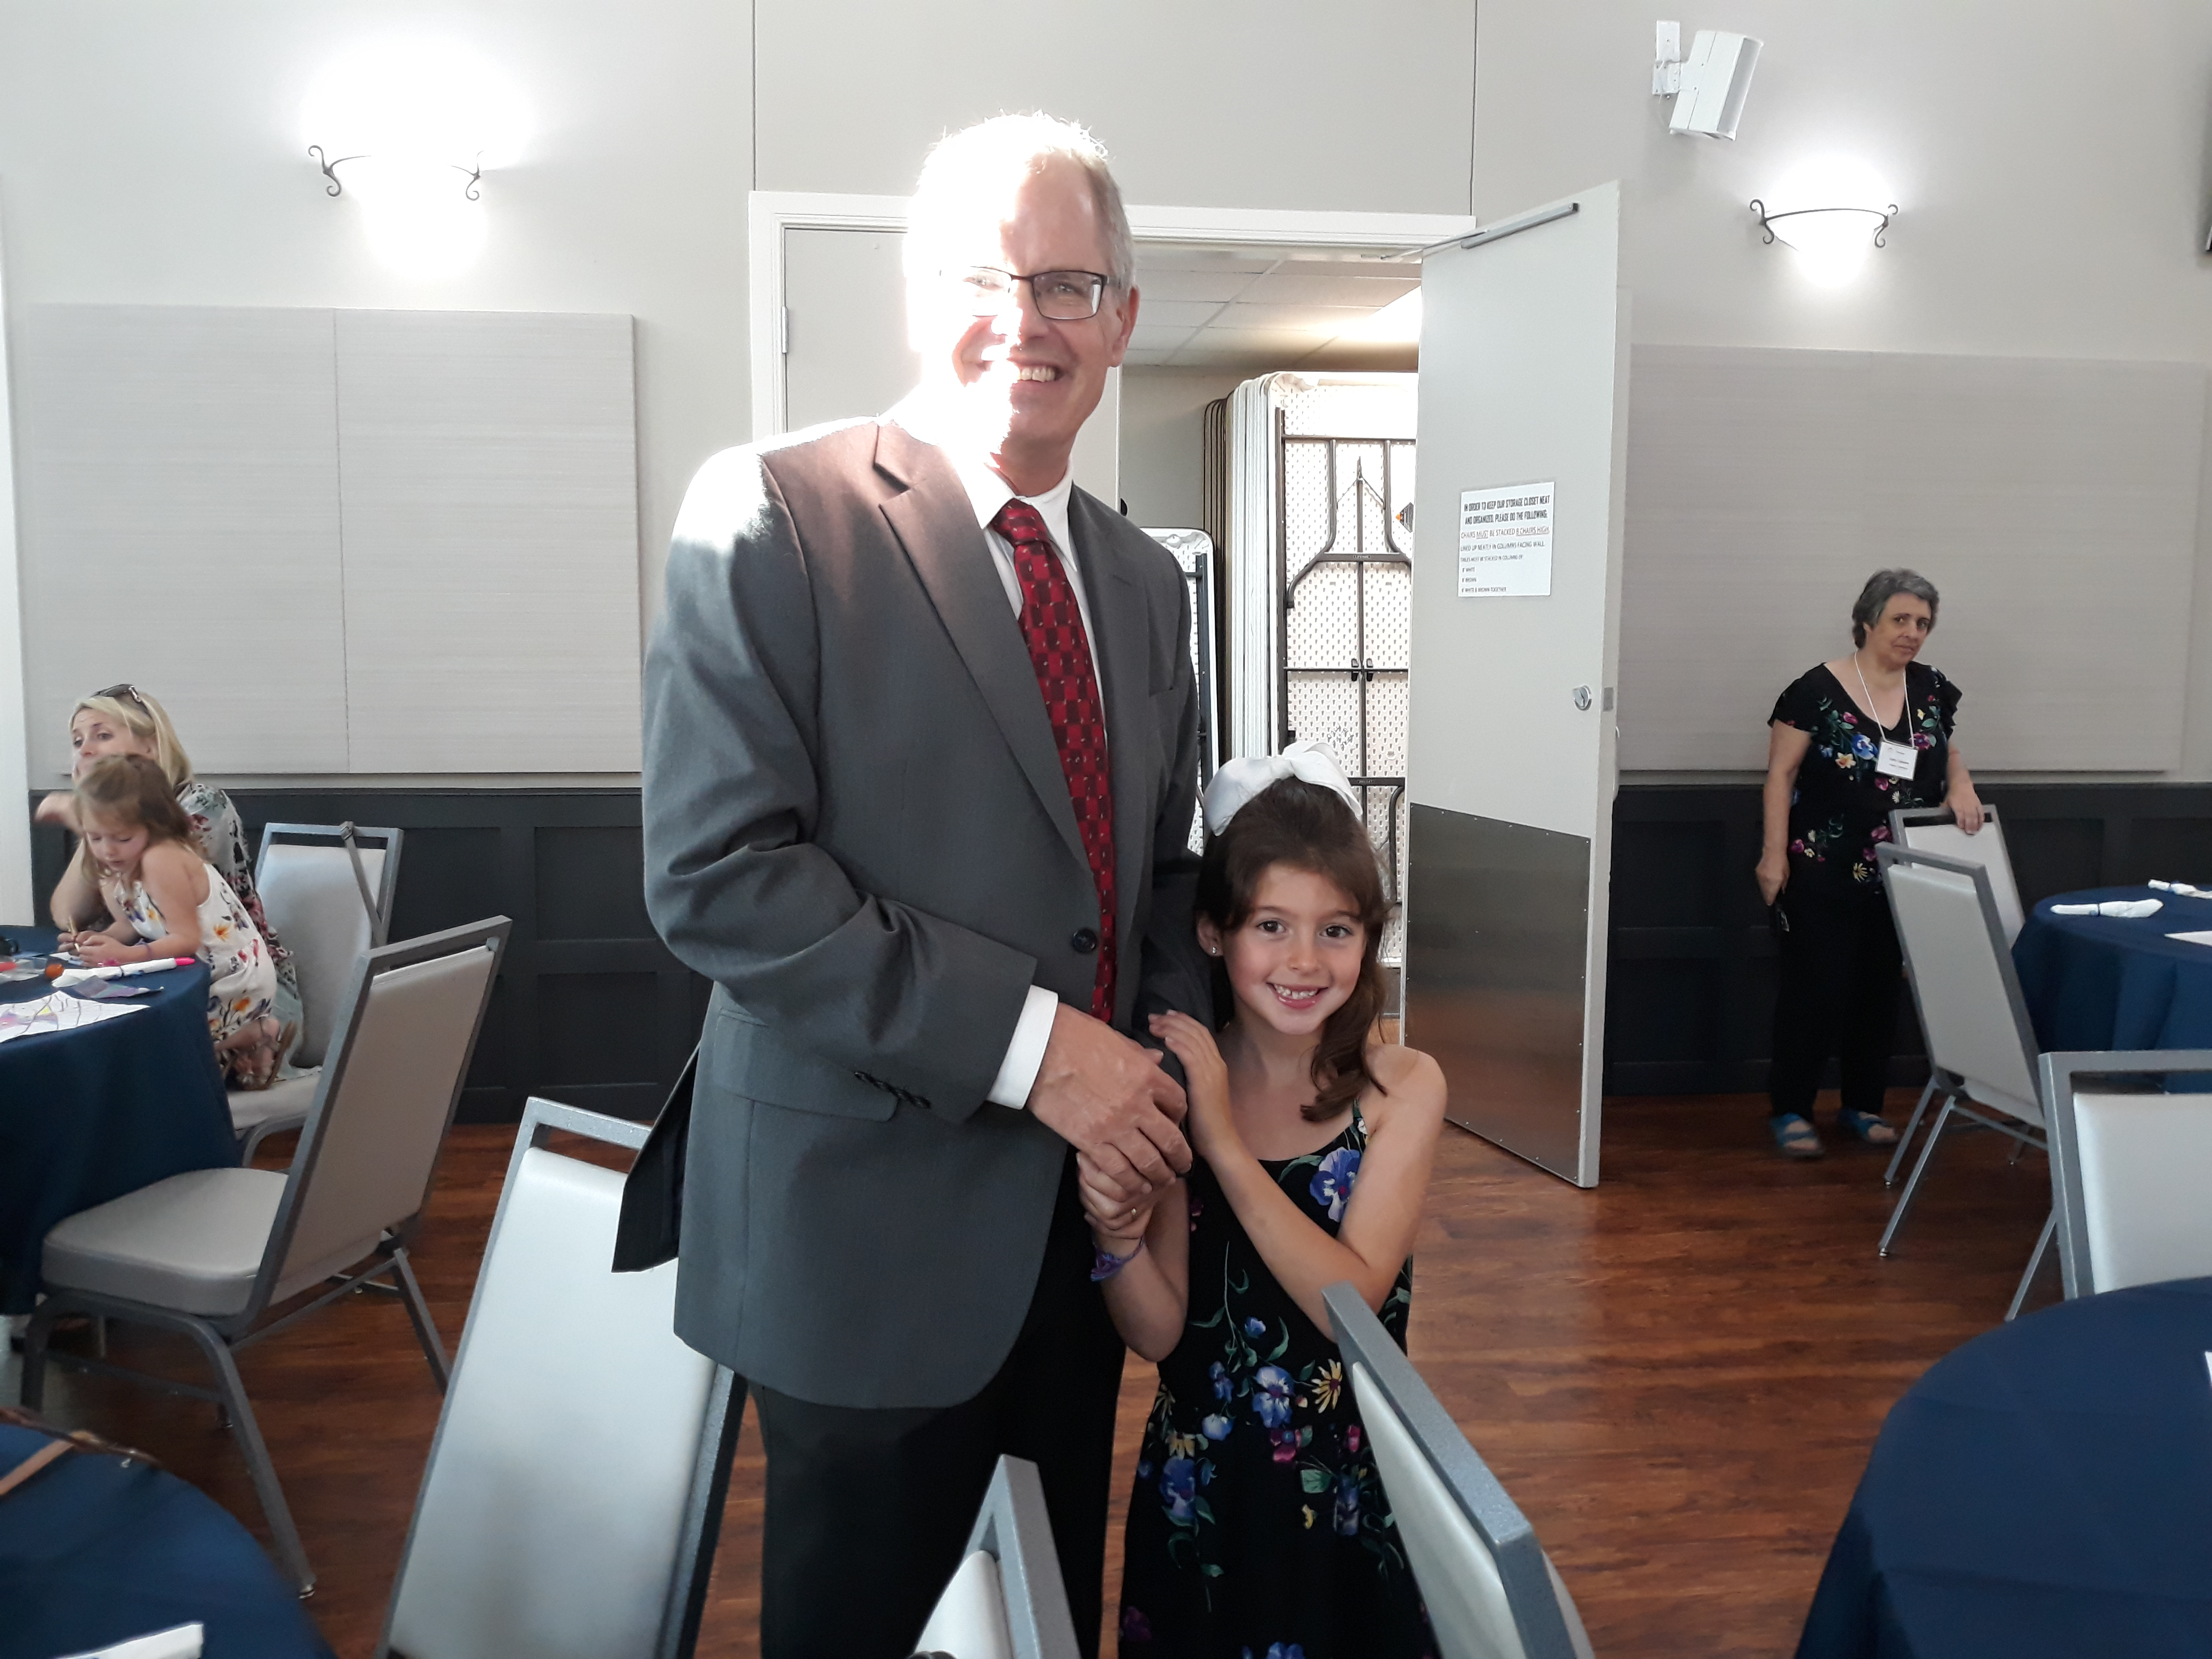 Executive Director of Pavilion Gordon Butler and his granddaughter enjoy a moment together before the program.